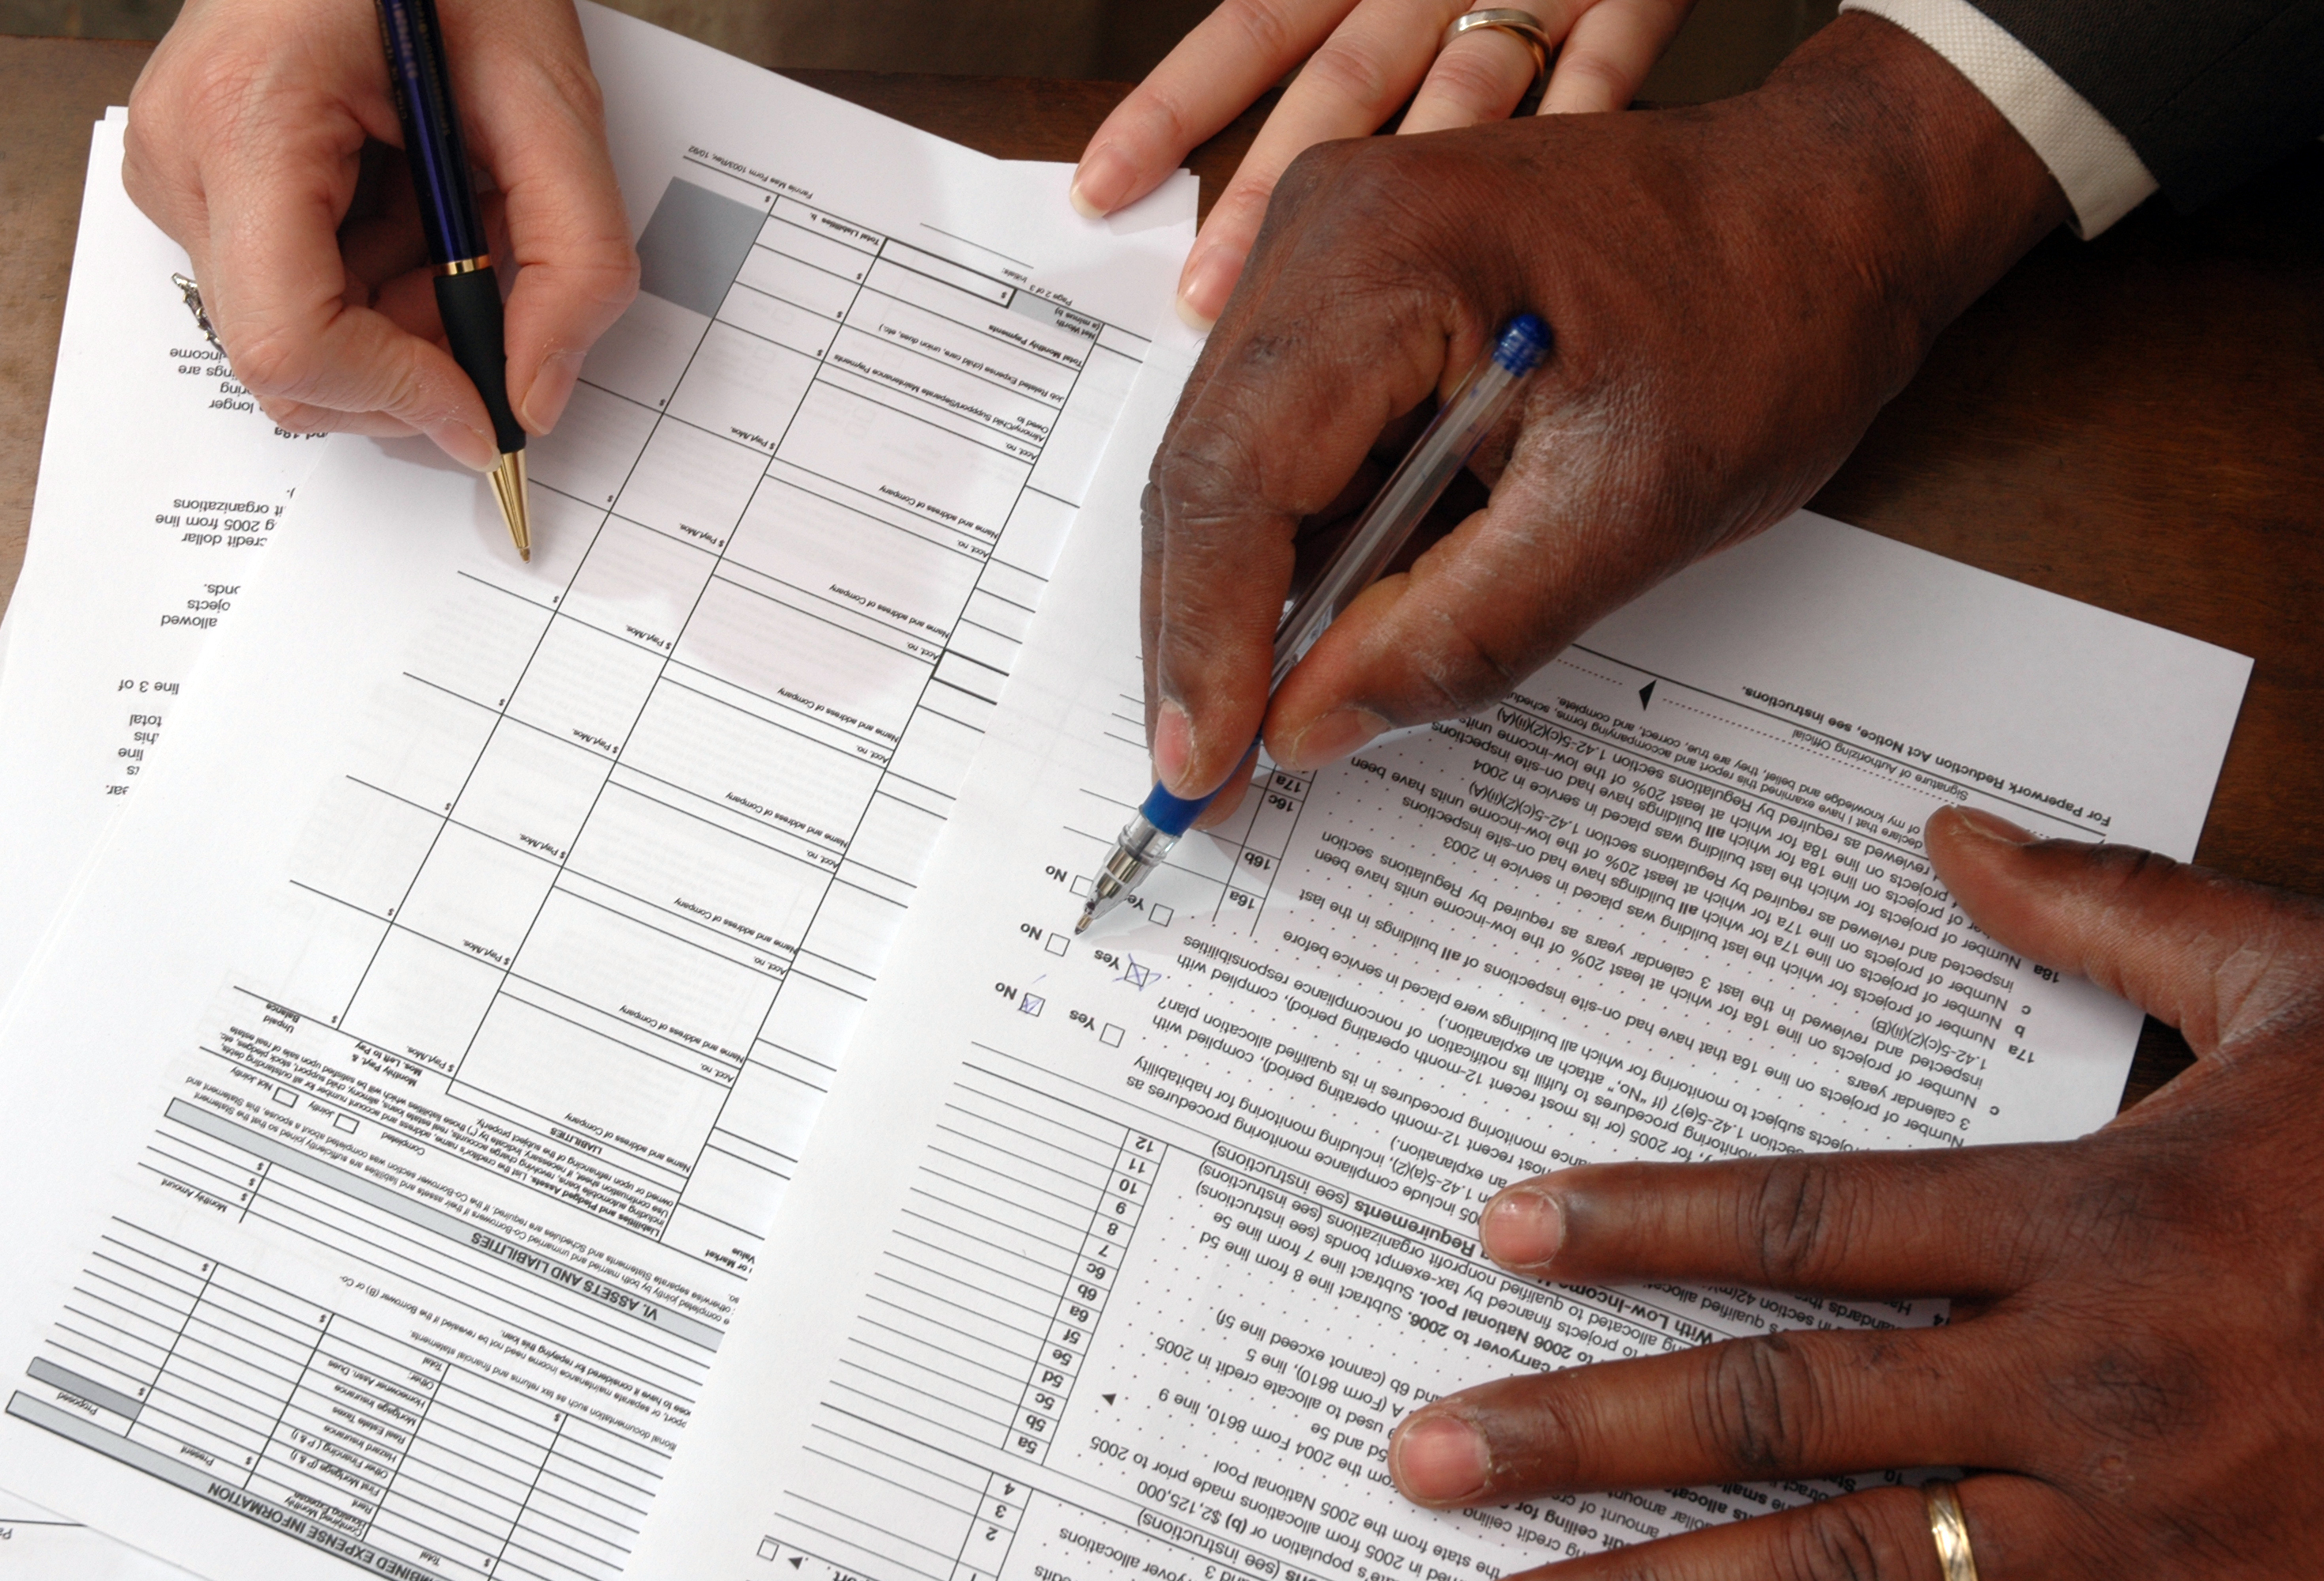 California Tax Law for Married and Filing Separate | Pocketsense